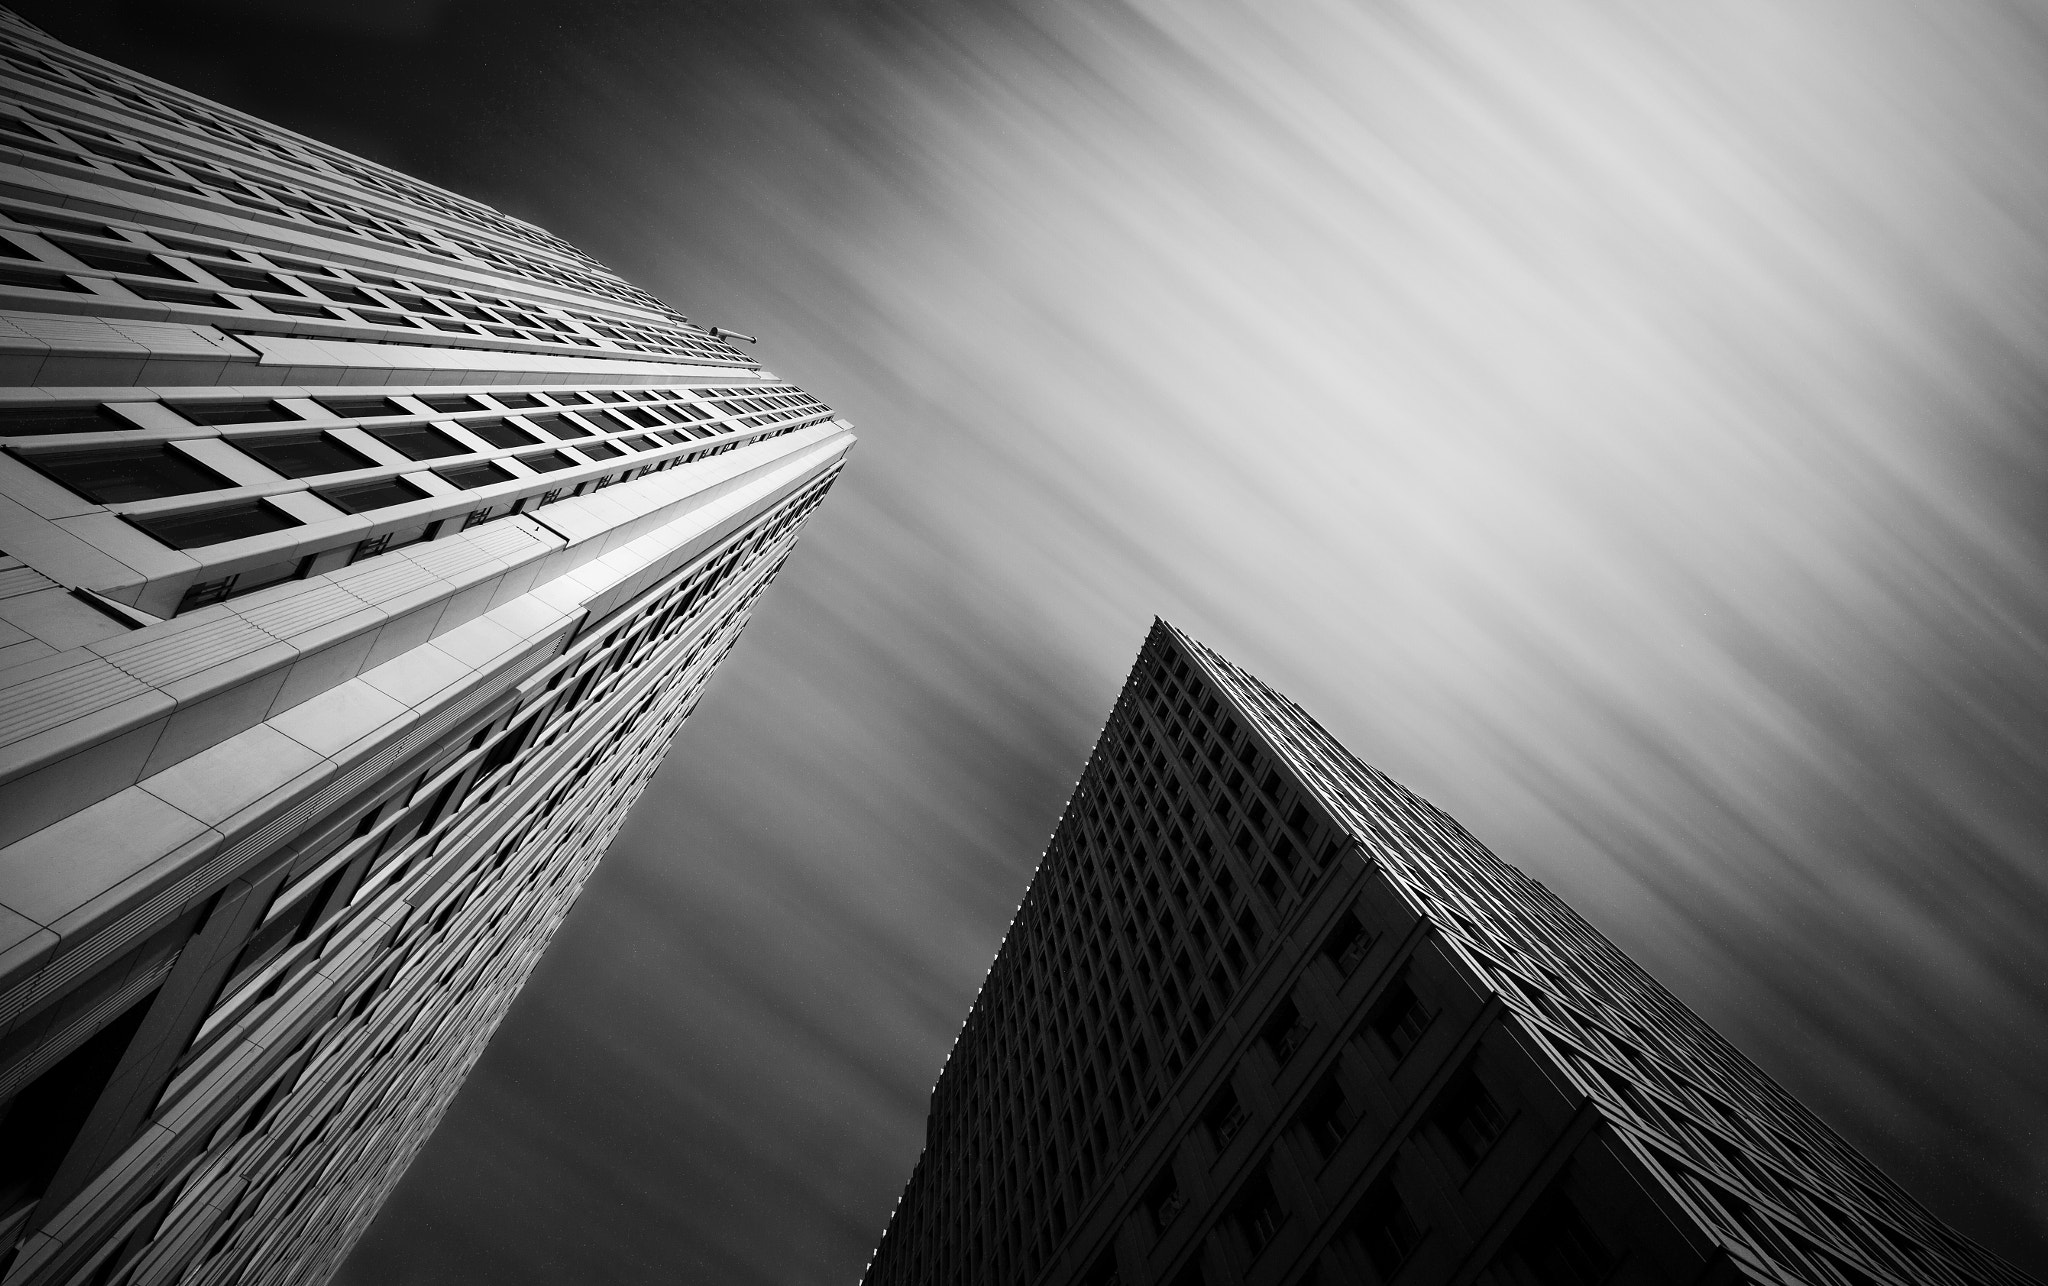 Photograph Moving by Philipp Richert on 500px